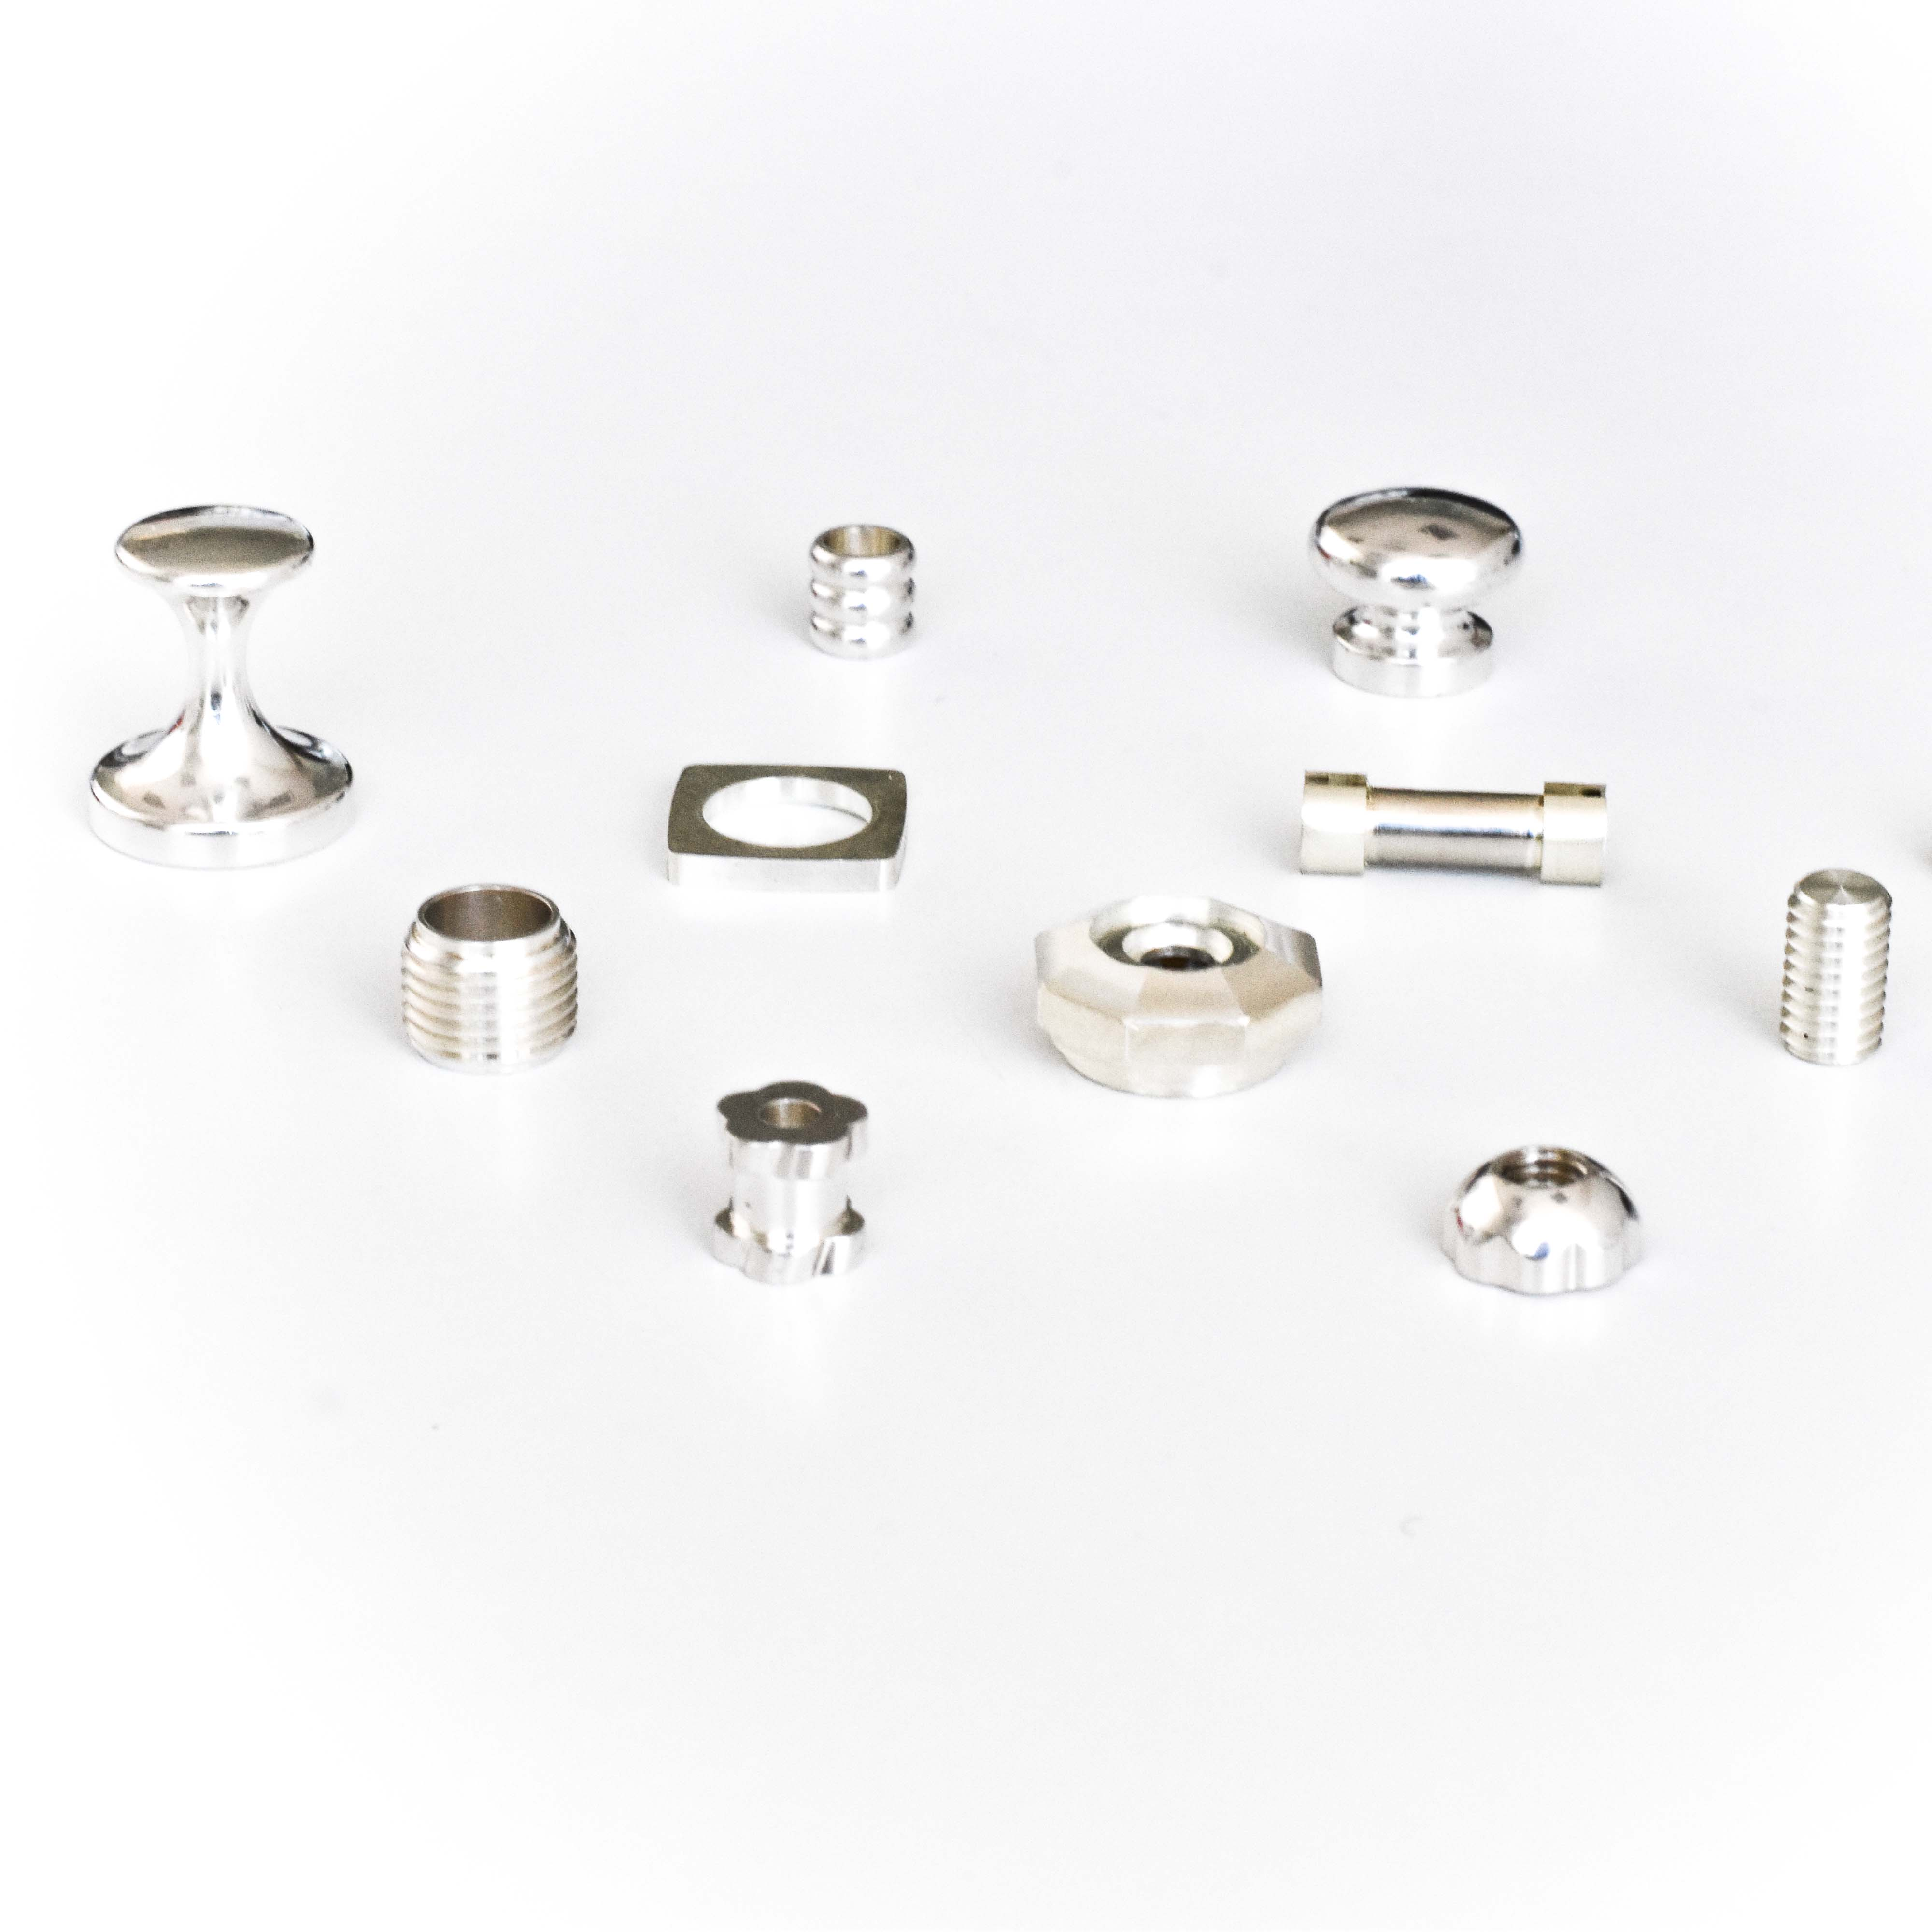 Personalized small silver parts and other metals for goldsmithing and silverware